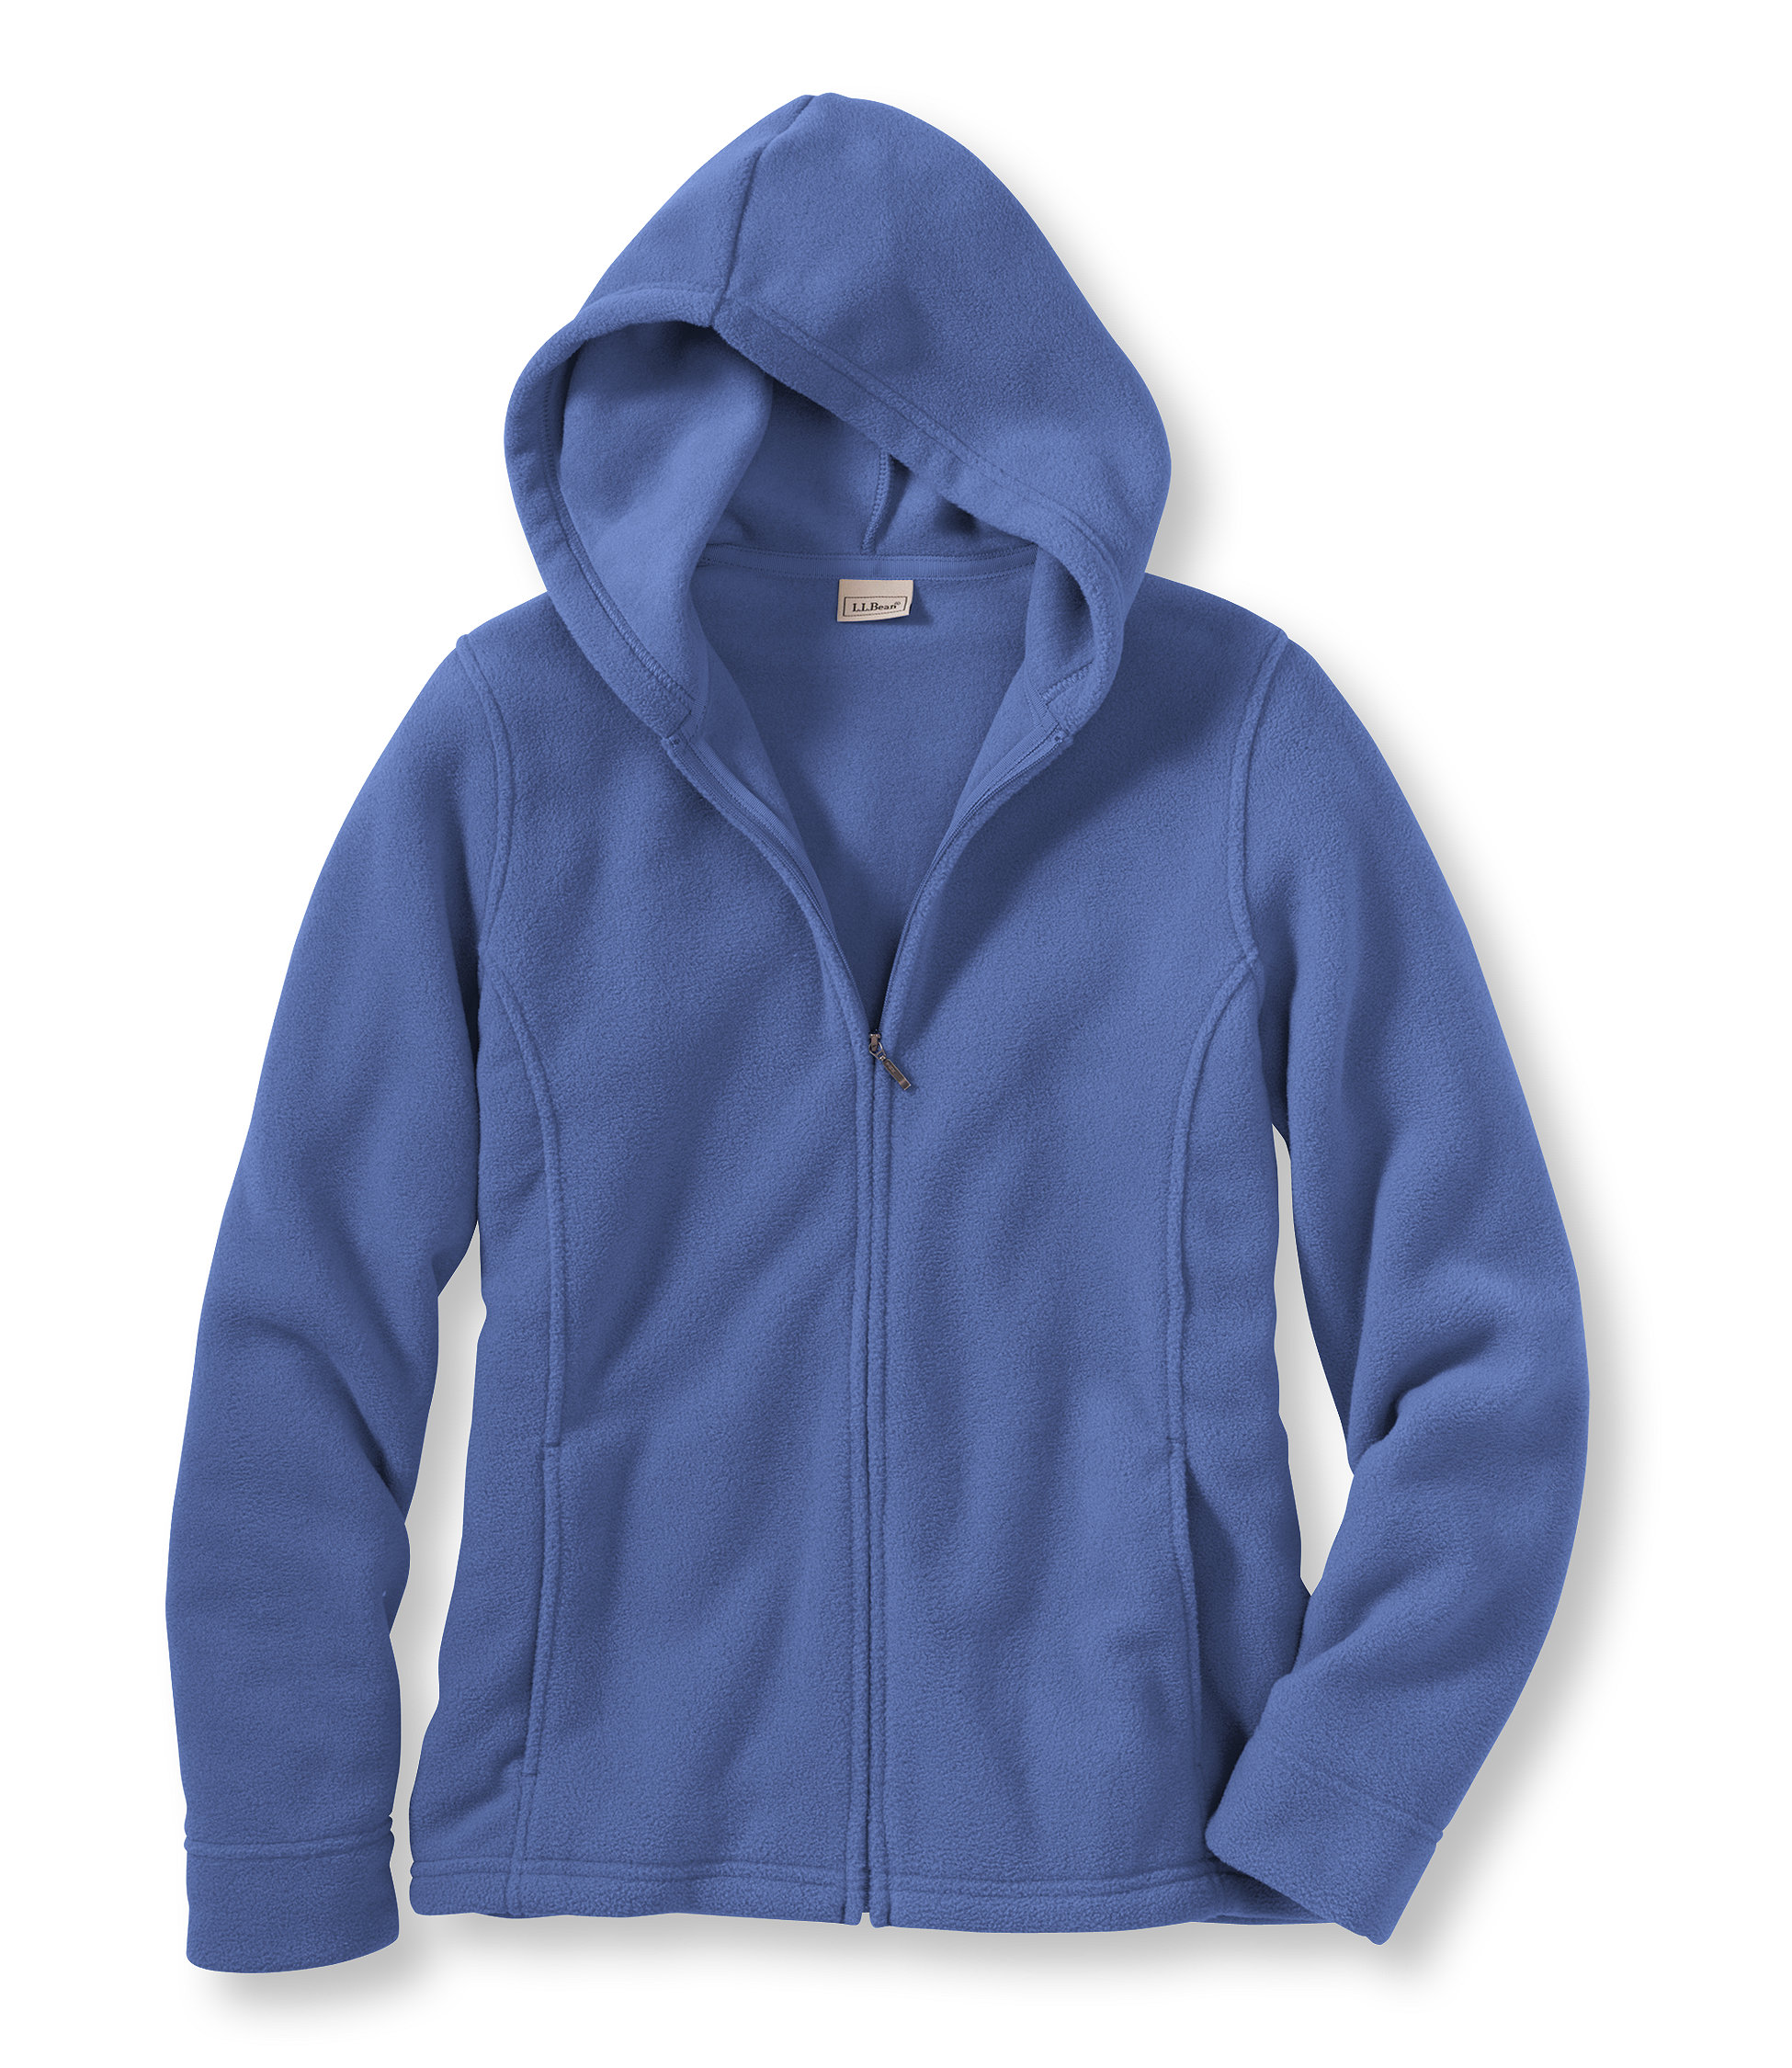 L.L.Bean Comfort Fleece, Hooded Jacket